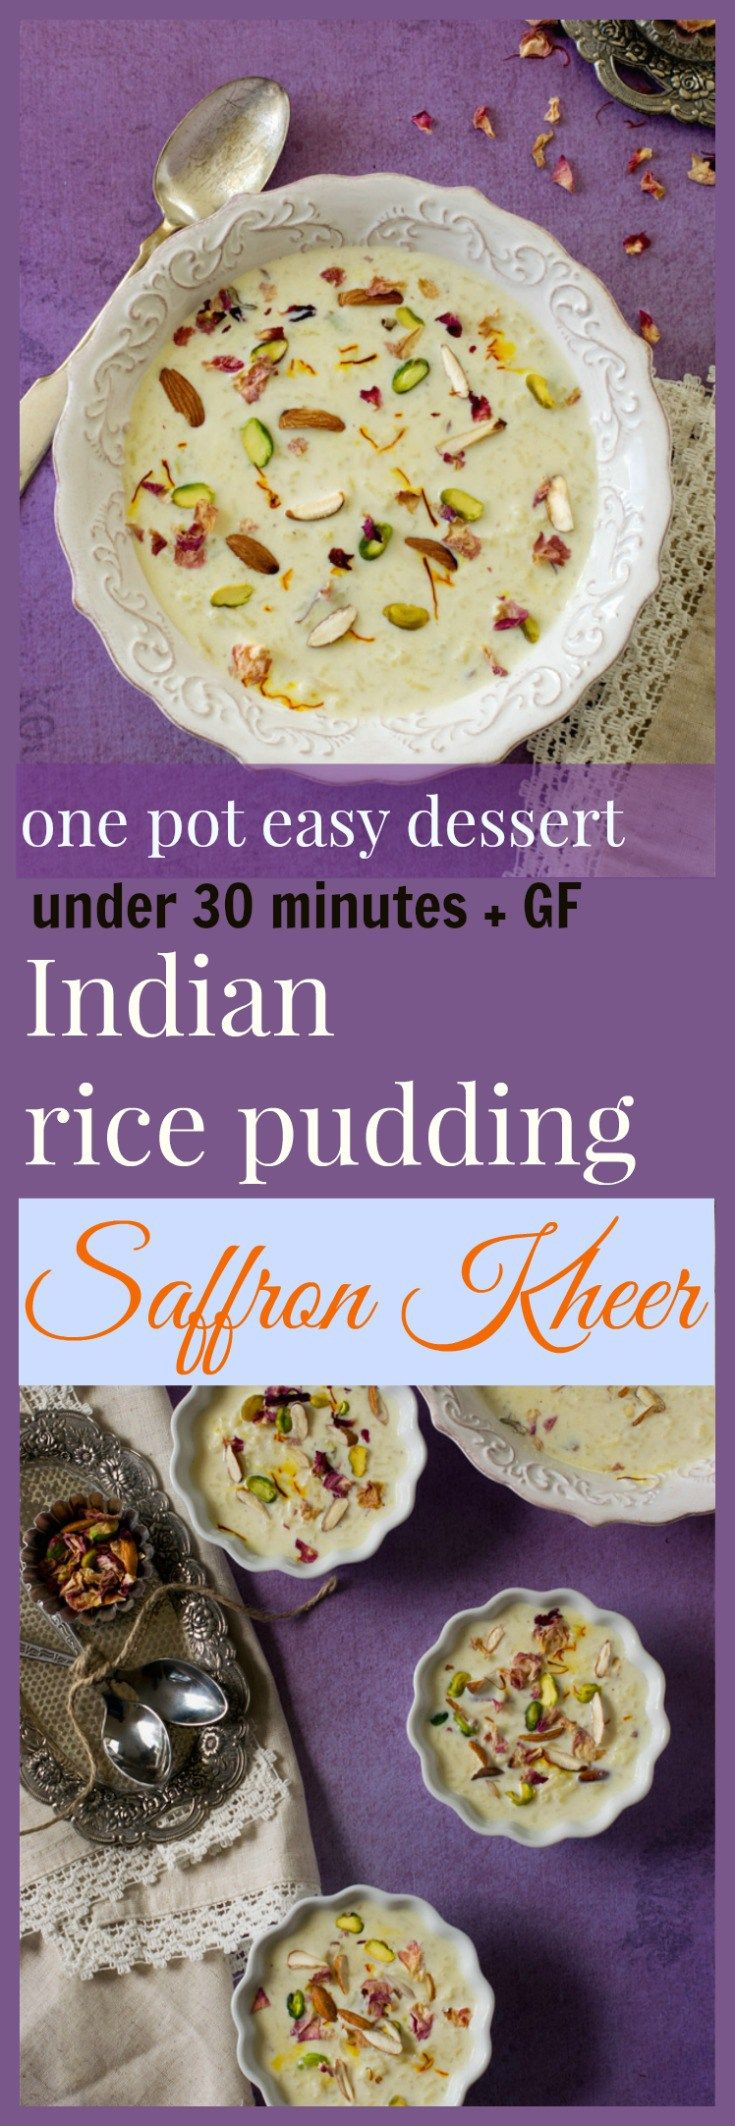 Saffron rice kheer - Indian rice pudding - one pot dessert recipe makes an easy Indian dessert/ sweet option for every special occasion. It's gluten free . #festive #indiandessert #comfortfood (Indian Sweet Recipes)